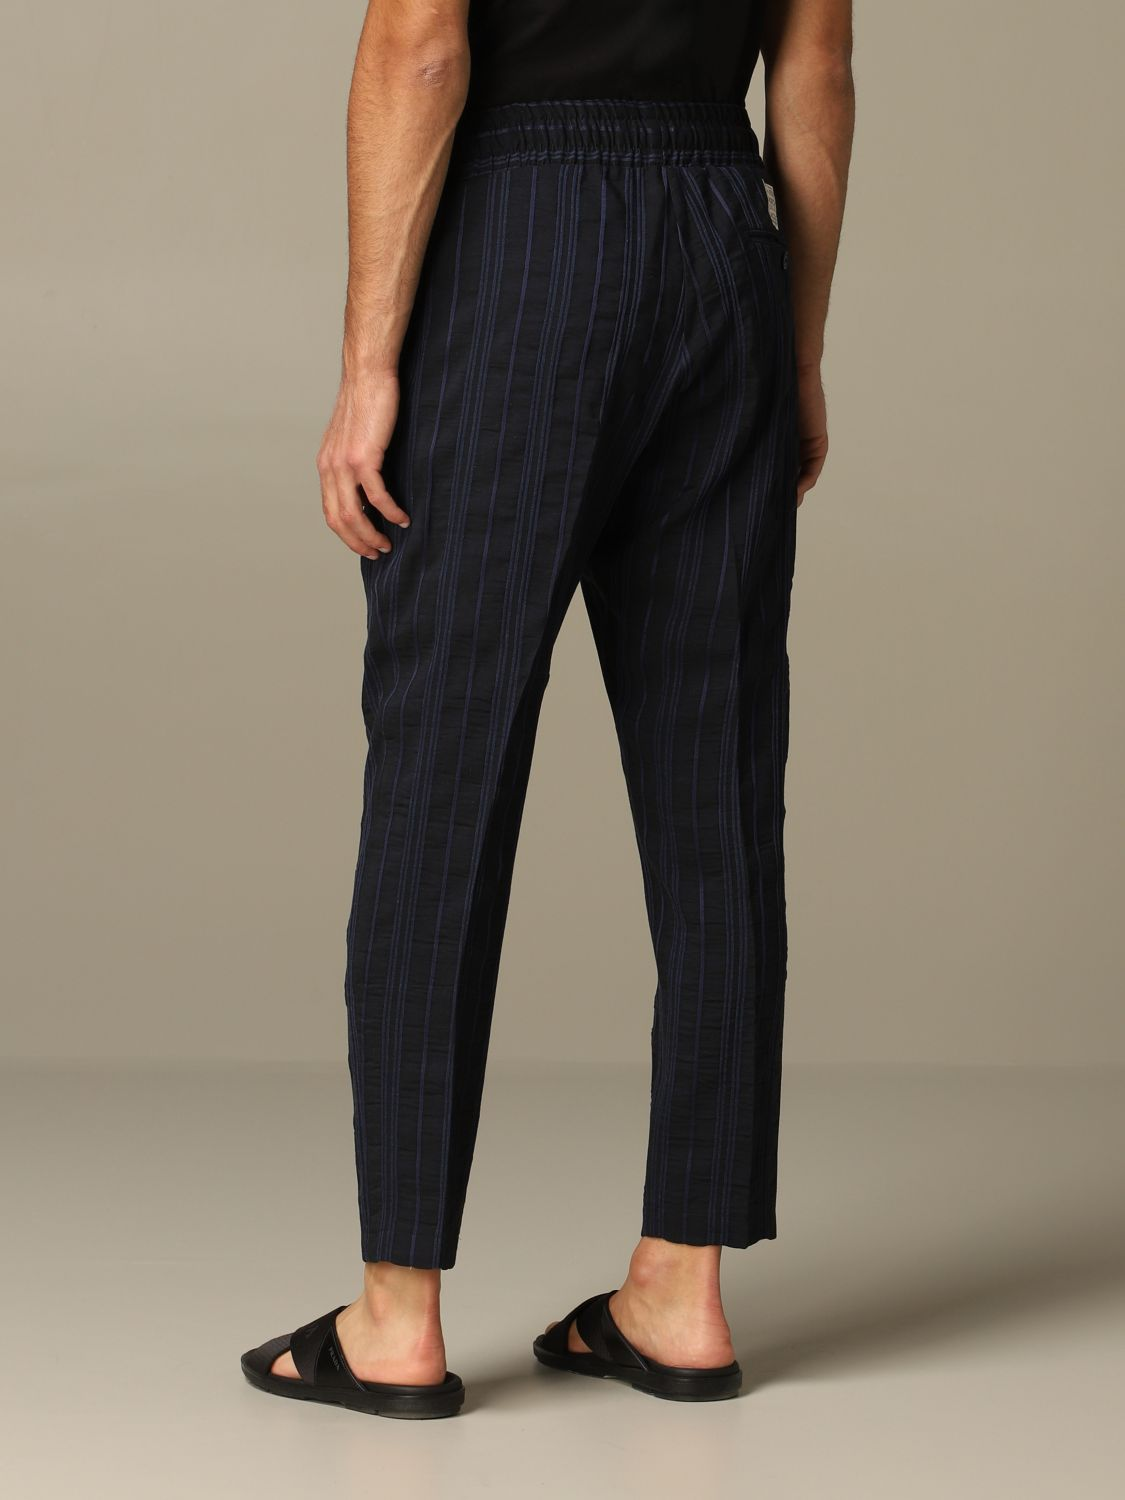 Pants Alessandro Dell'acqua: Alessandro Dell'acqua trousers in striped linen blend blue 2